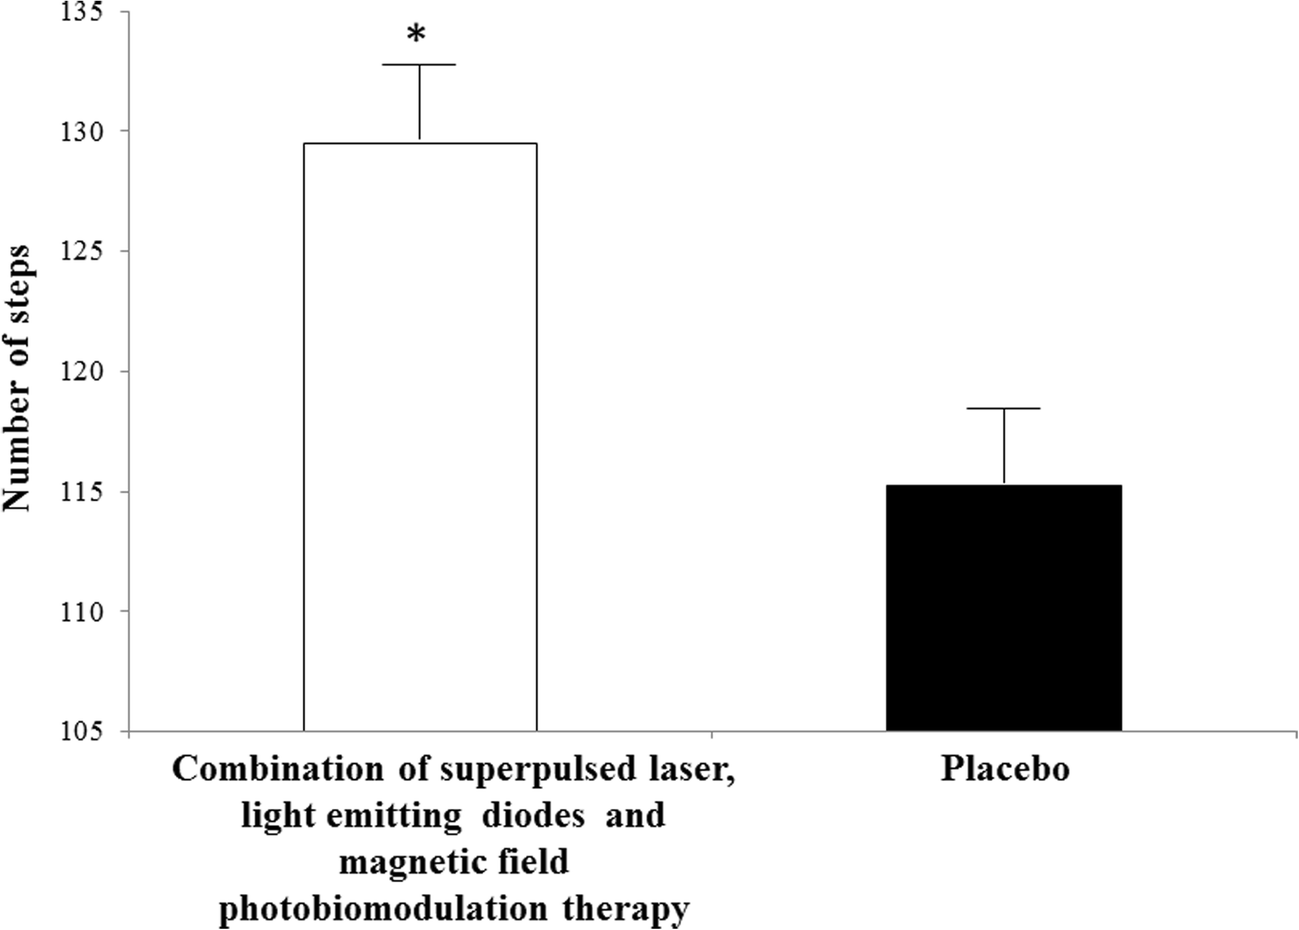 Acute Effects Of Photobiomodulation Therapy Pbmt Combining Laser Light Emitting Diode Diagram Open Image In New Window